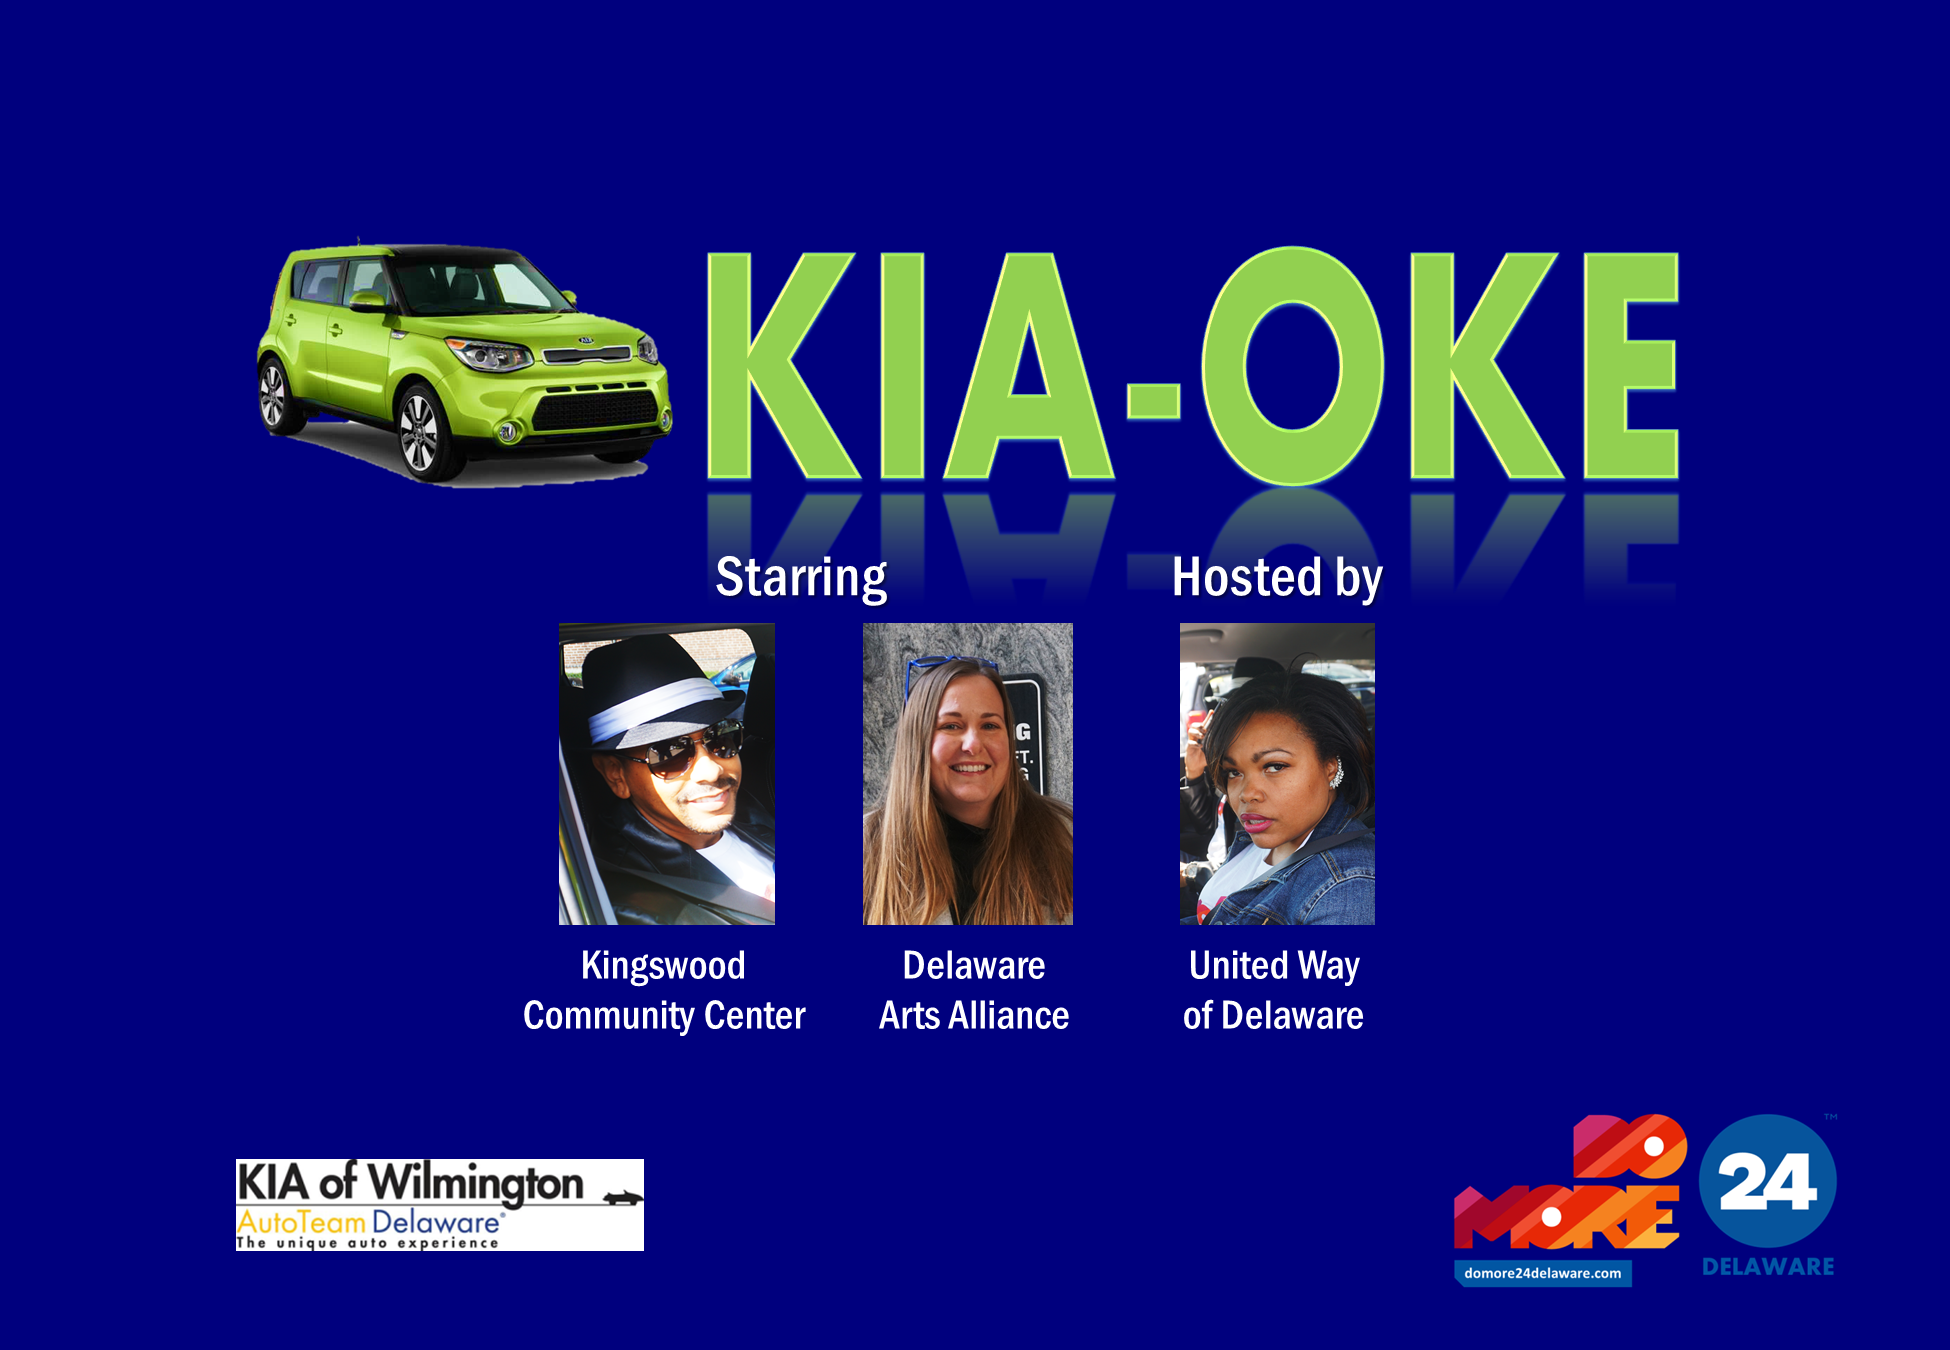 Kia Oke - Auto Team Delaware- United Way of Delaware